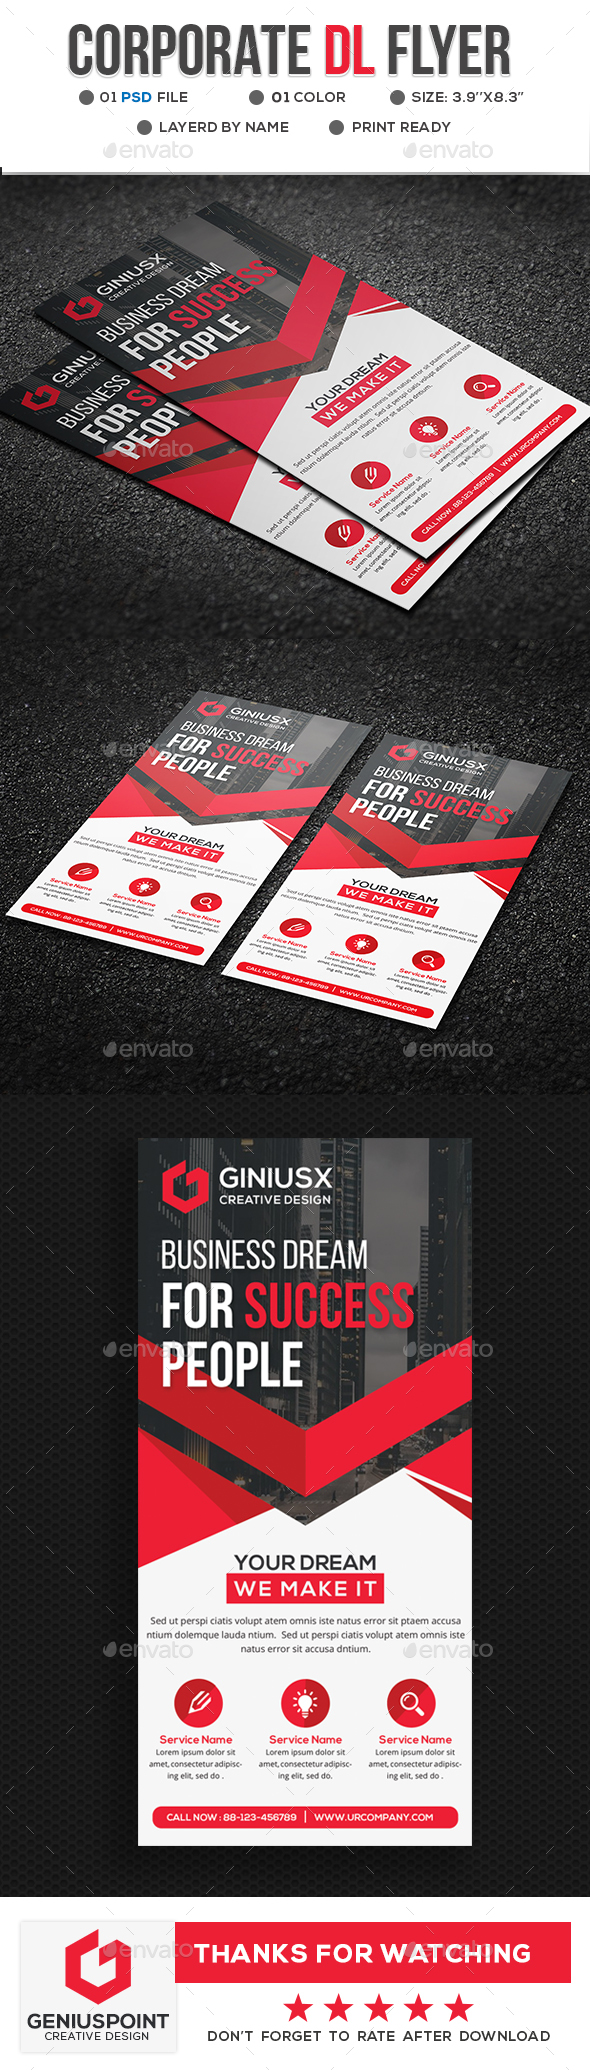 Corporate DL-Flyer Template - Flyers Print Templates